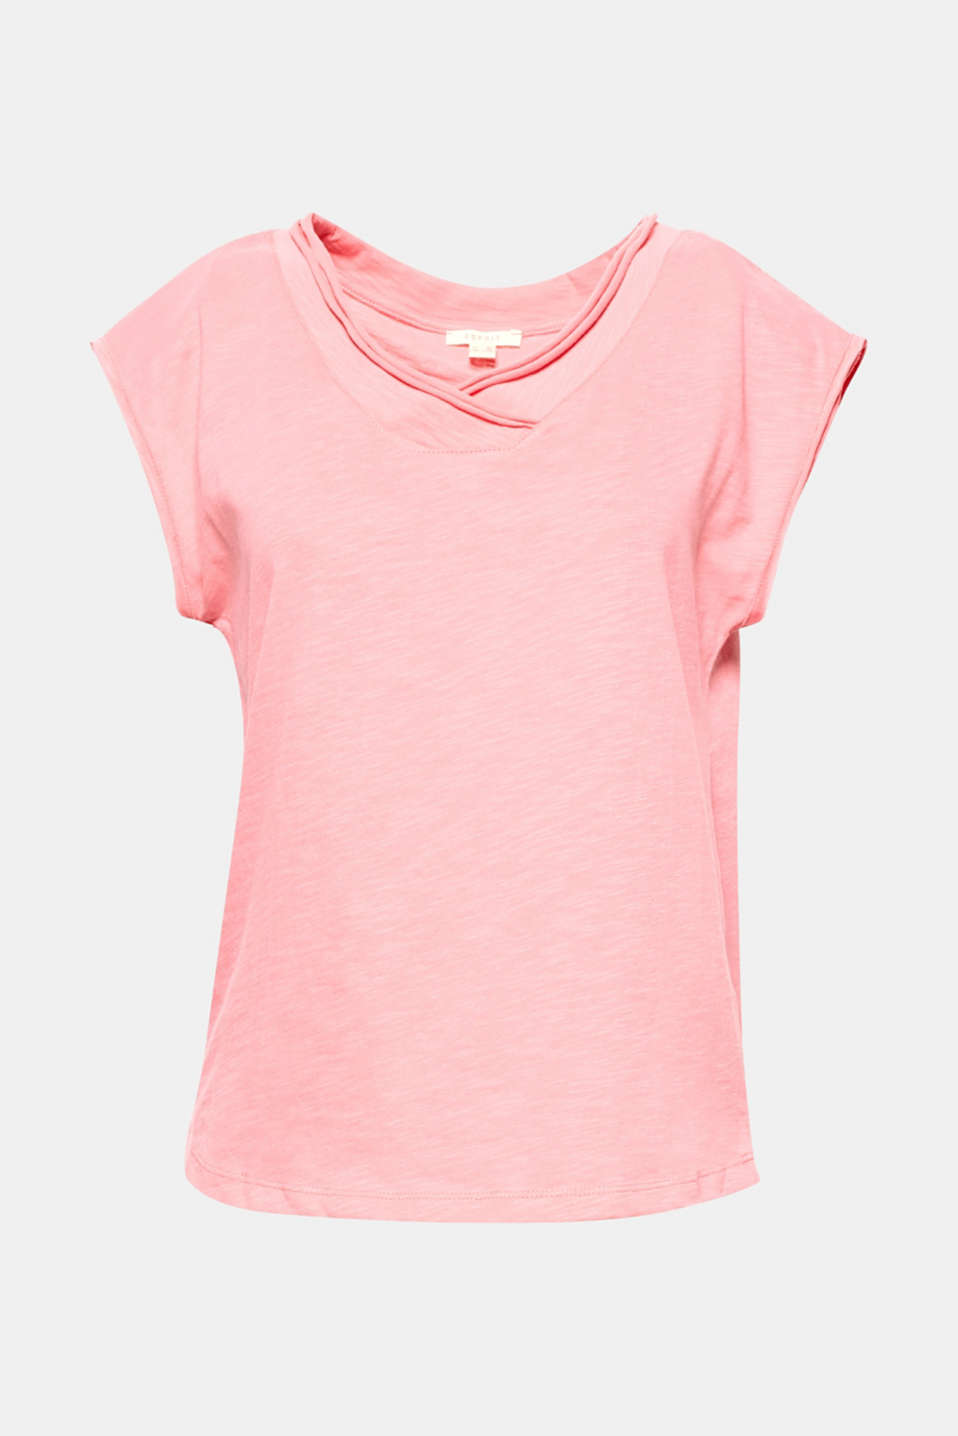 This short, boxy cotton t-shirt is light and airy with open edged seams and a fashionable v-neckline!